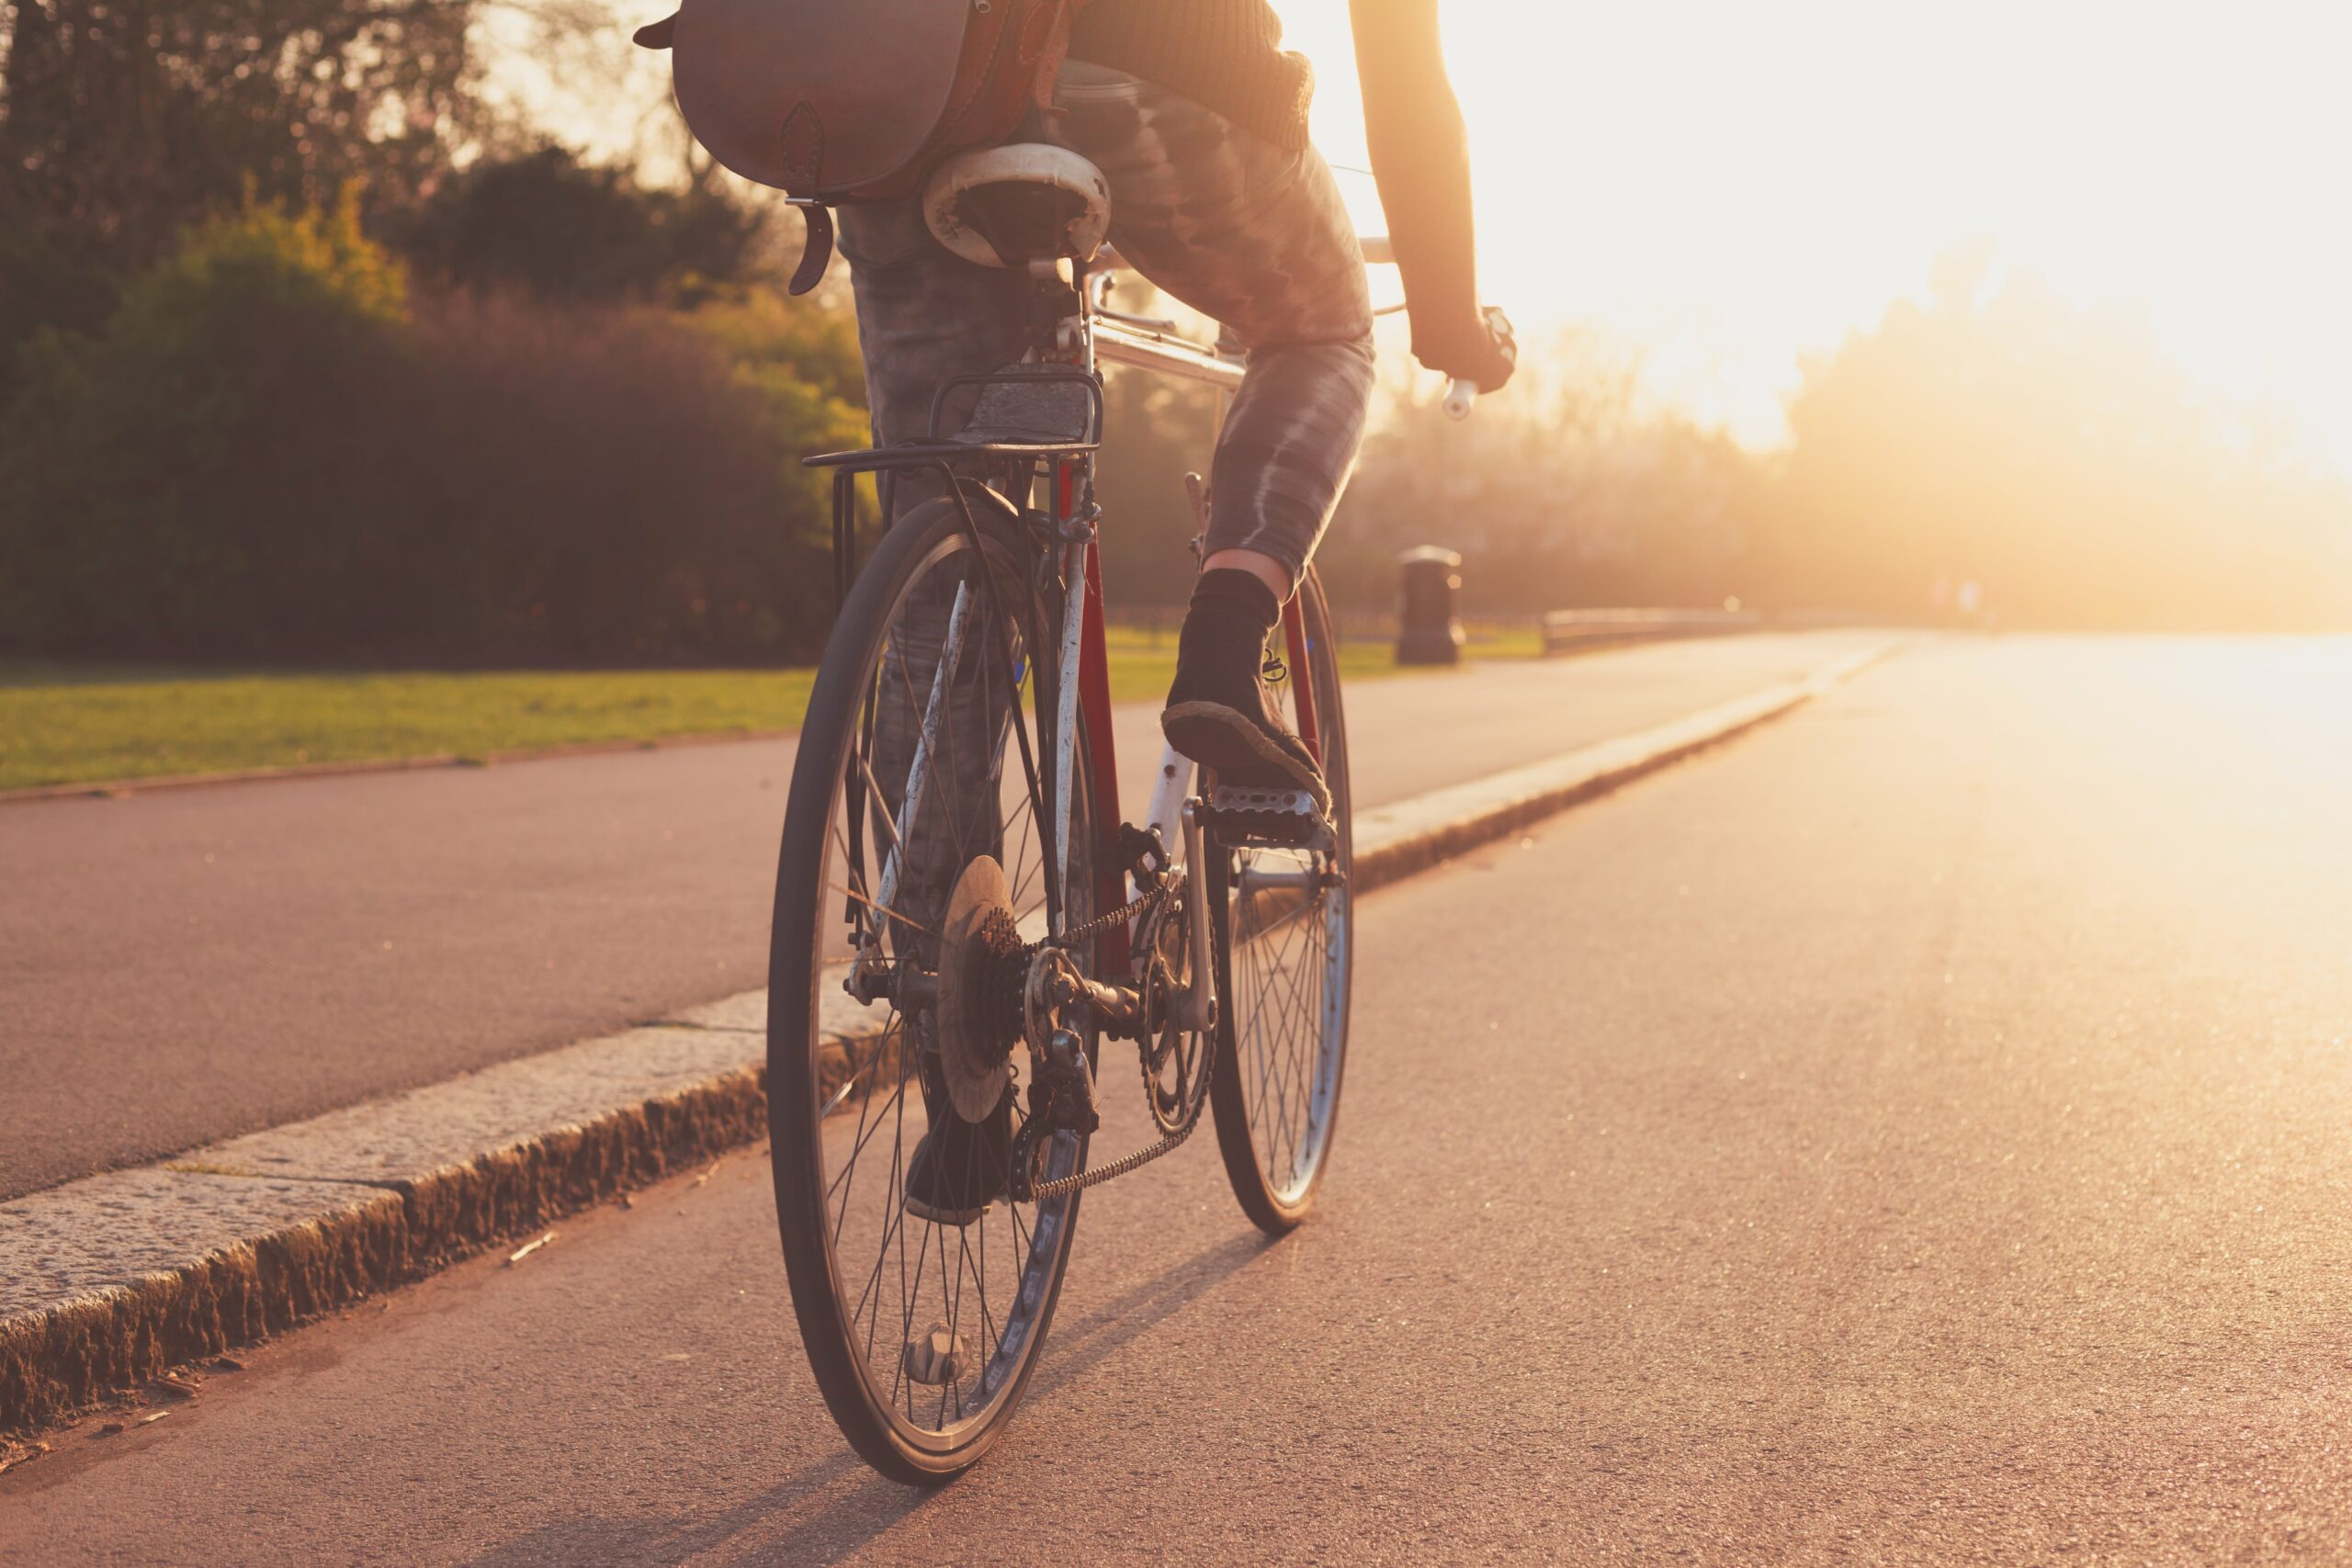 Cars, Bikes, Public Transport and Ethical Investment